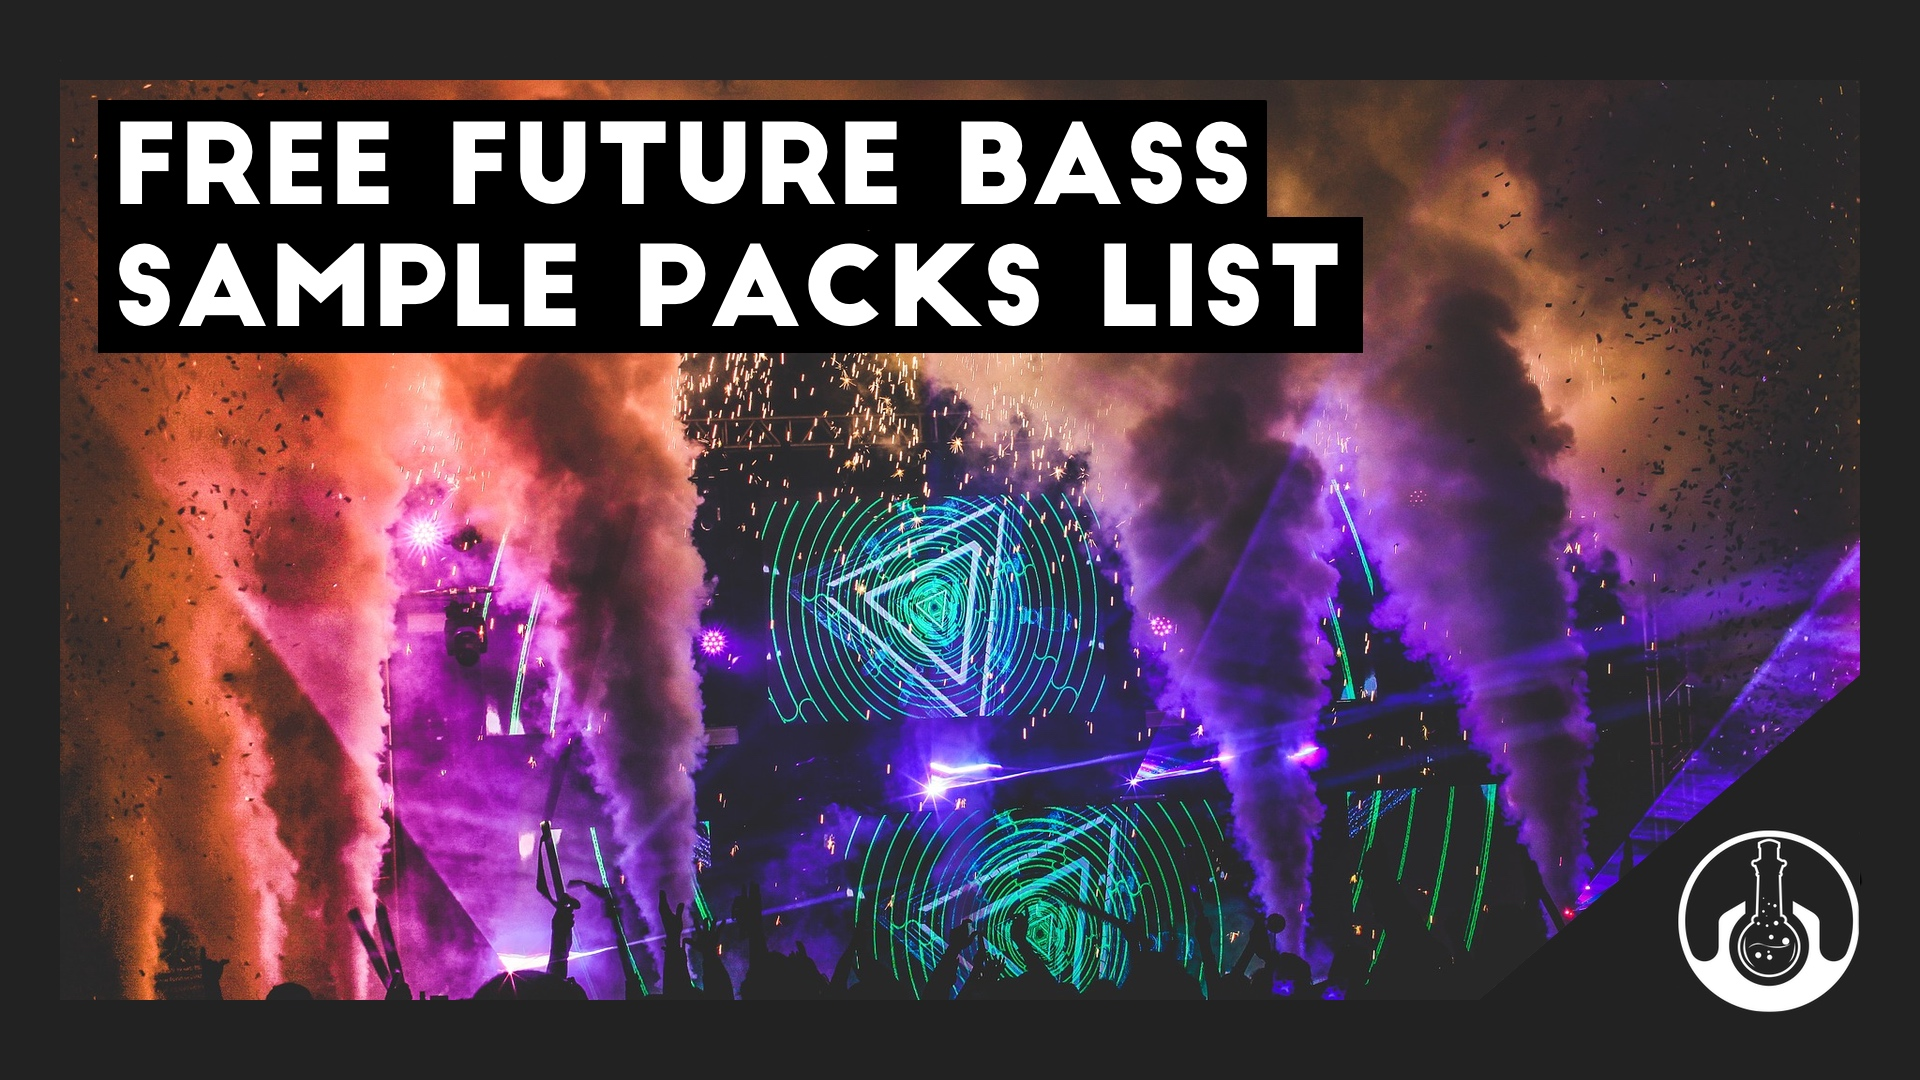 Free Future Bass Sample Packs for Music Producers